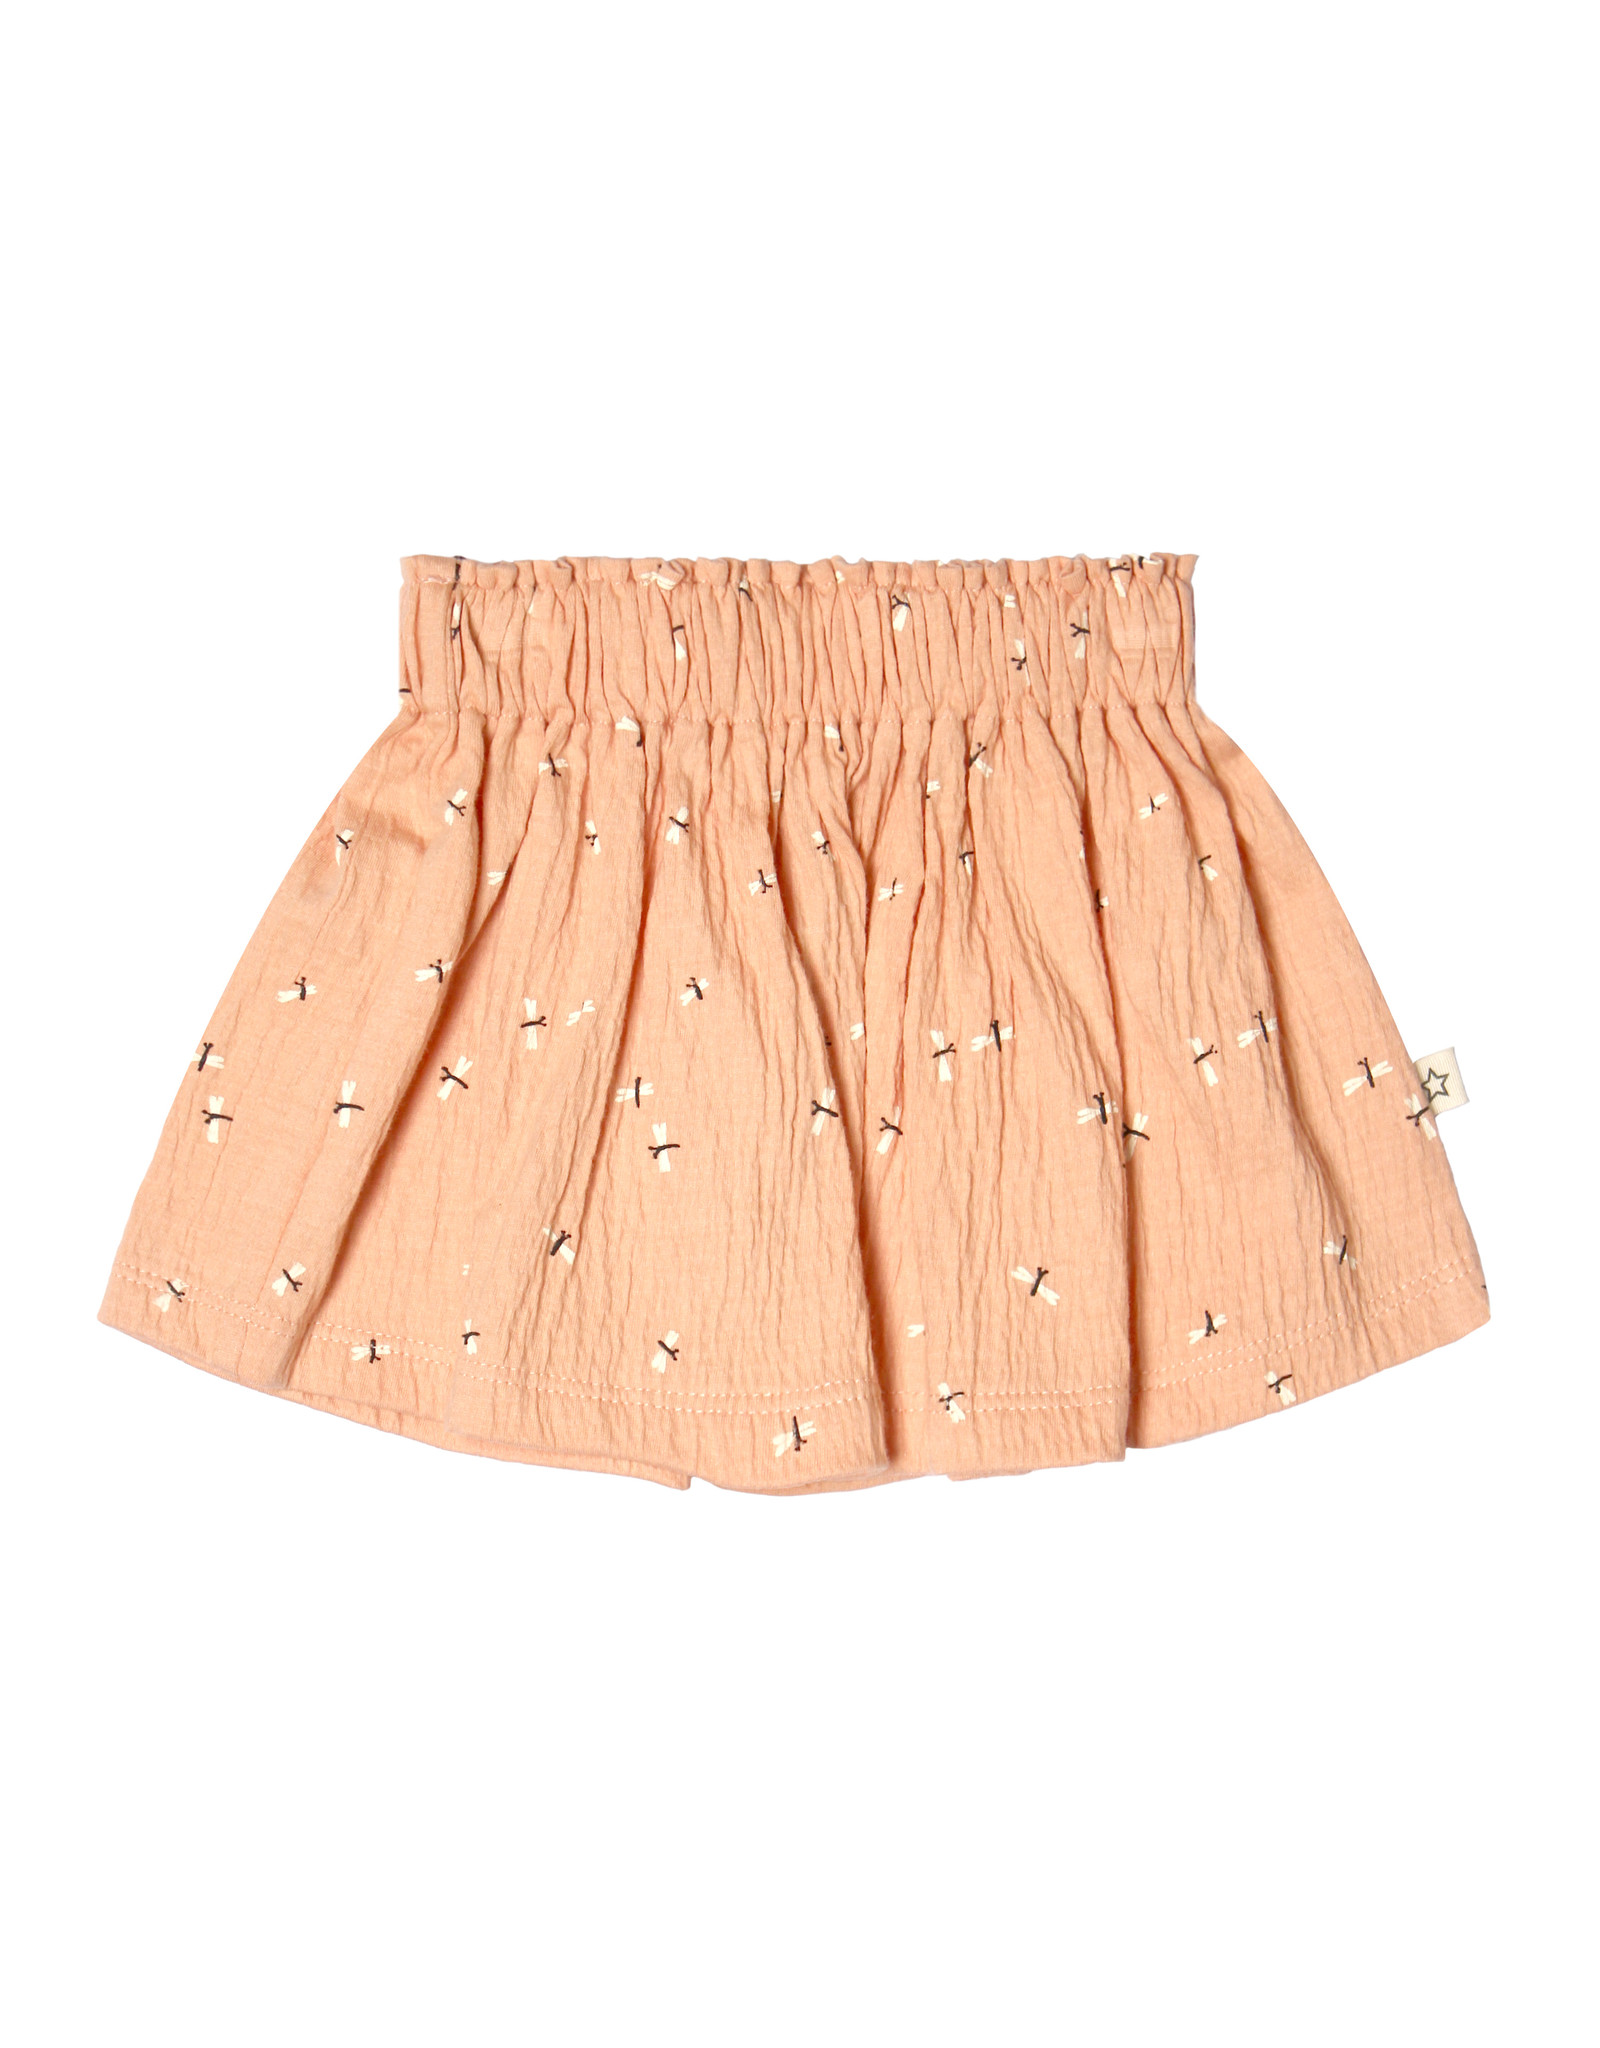 Your Wishes Dragonfly | Skirt kids